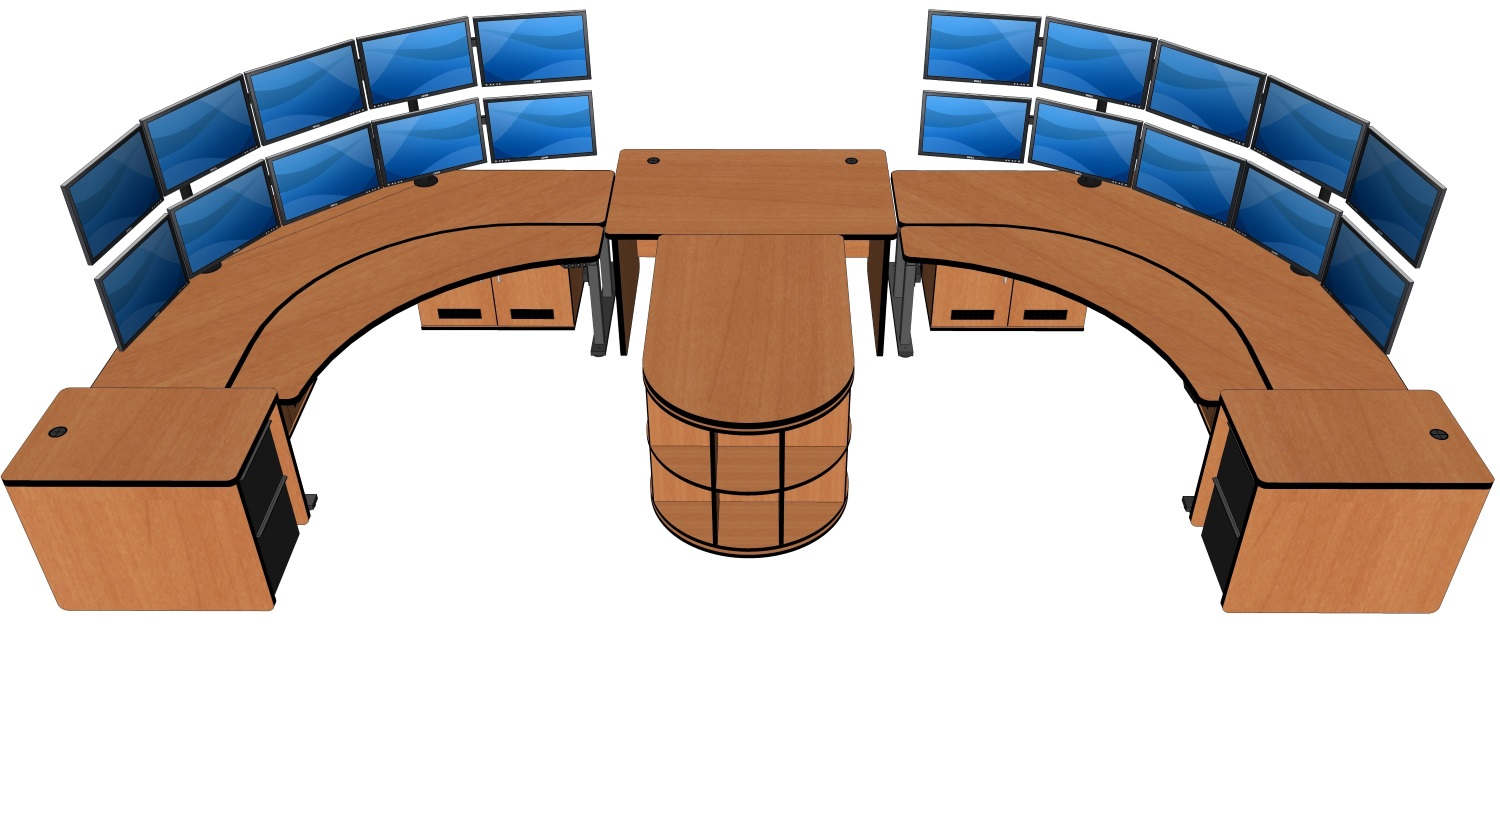 </b></font>CONTROL ROOM DISPATCH FURNITURE. MODEL #CONTROL-ECP-5over5. INCLUDES EVERYTHING NEEDED FOR 2 CONTROL ROOM OPERATORS. VIDEO: </b></font>. <p>RATING:&#11088;&#11088;&#11088;&#11088;&#11088;</b></font></b>